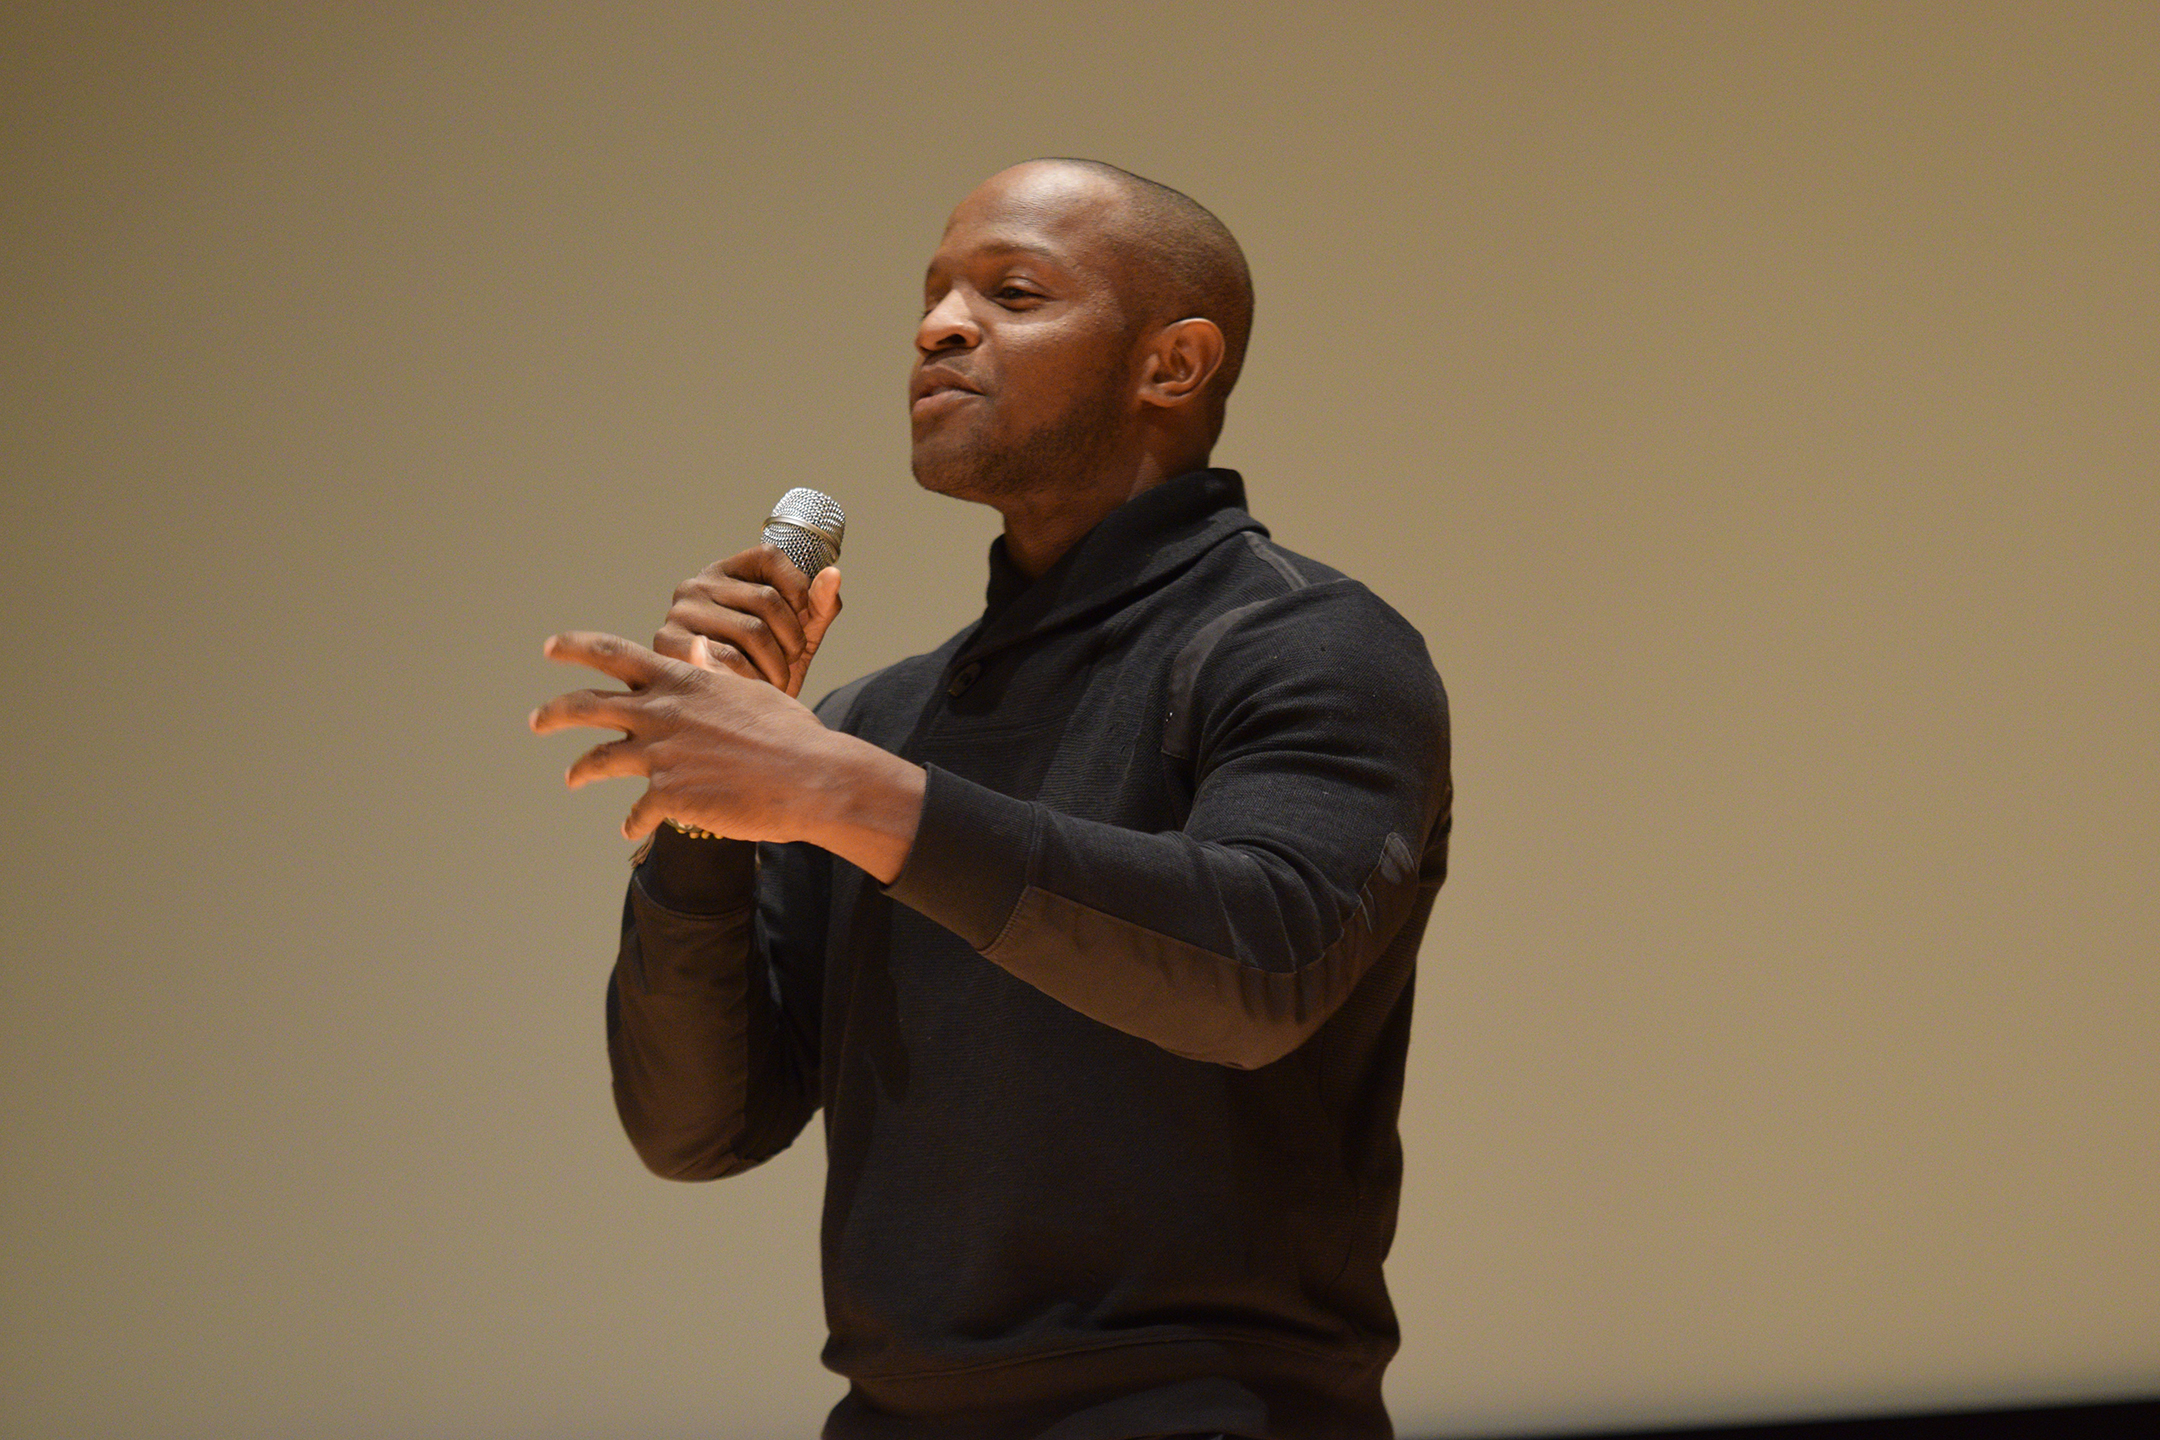 """Qasim Basir, writer and director of the 2010 film """"Mooz-Lum,"""" answers audience questions after a screening of the film in the UConn Student Union Theater in Storrs, Connecticut on Monday, Nov. 30, 2015. (Grant Zitomer/The Daily Campus)"""